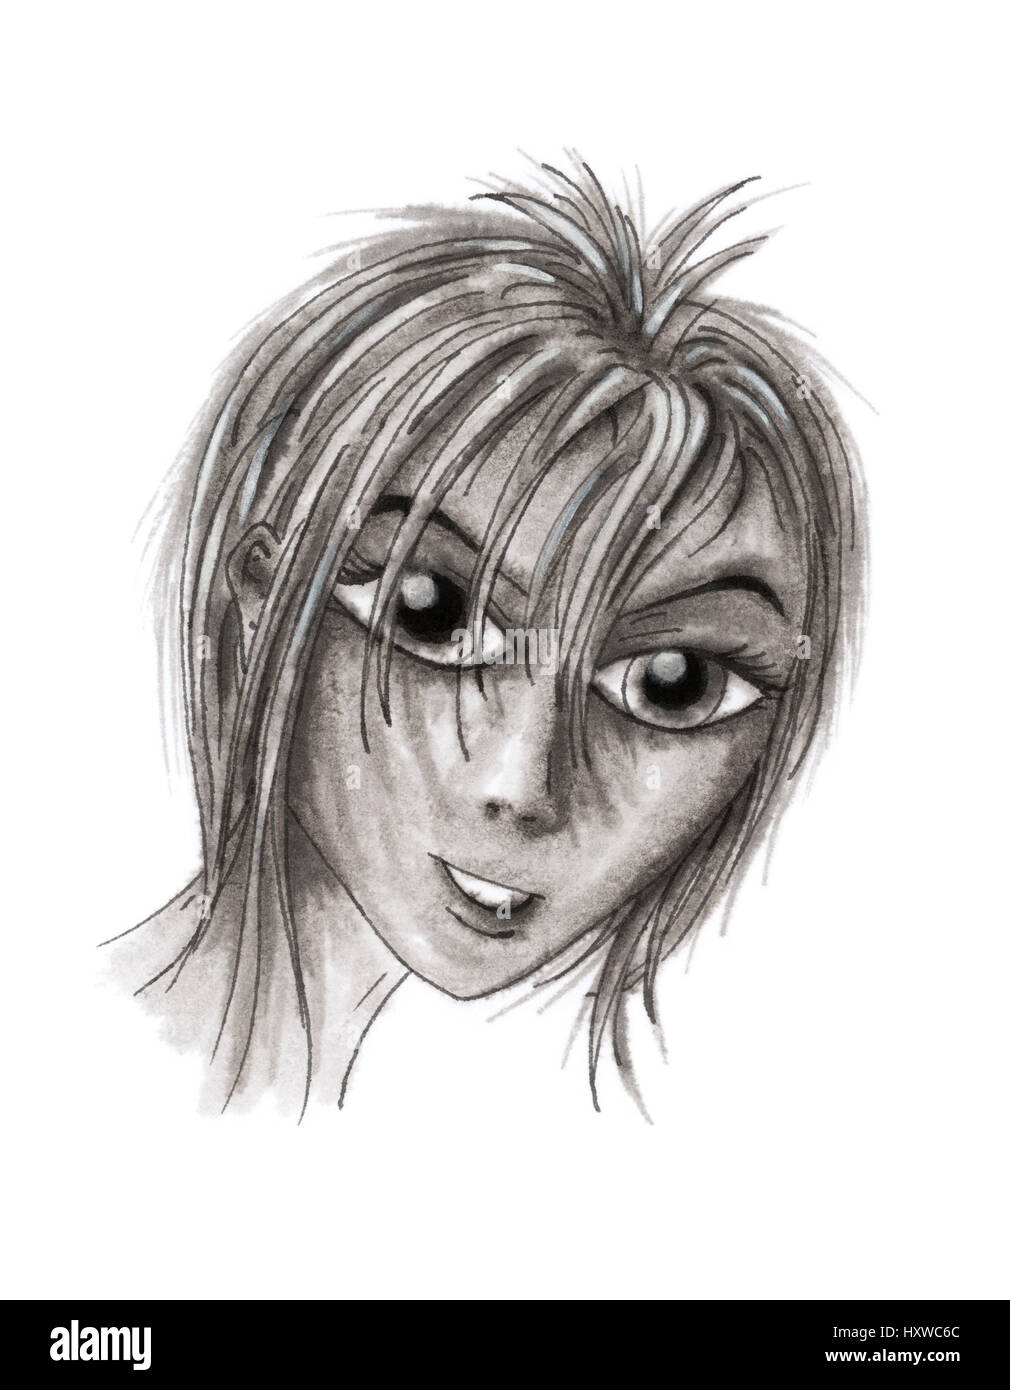 Girl portrait in cartoon style. Ink on rough paper. - Stock Image